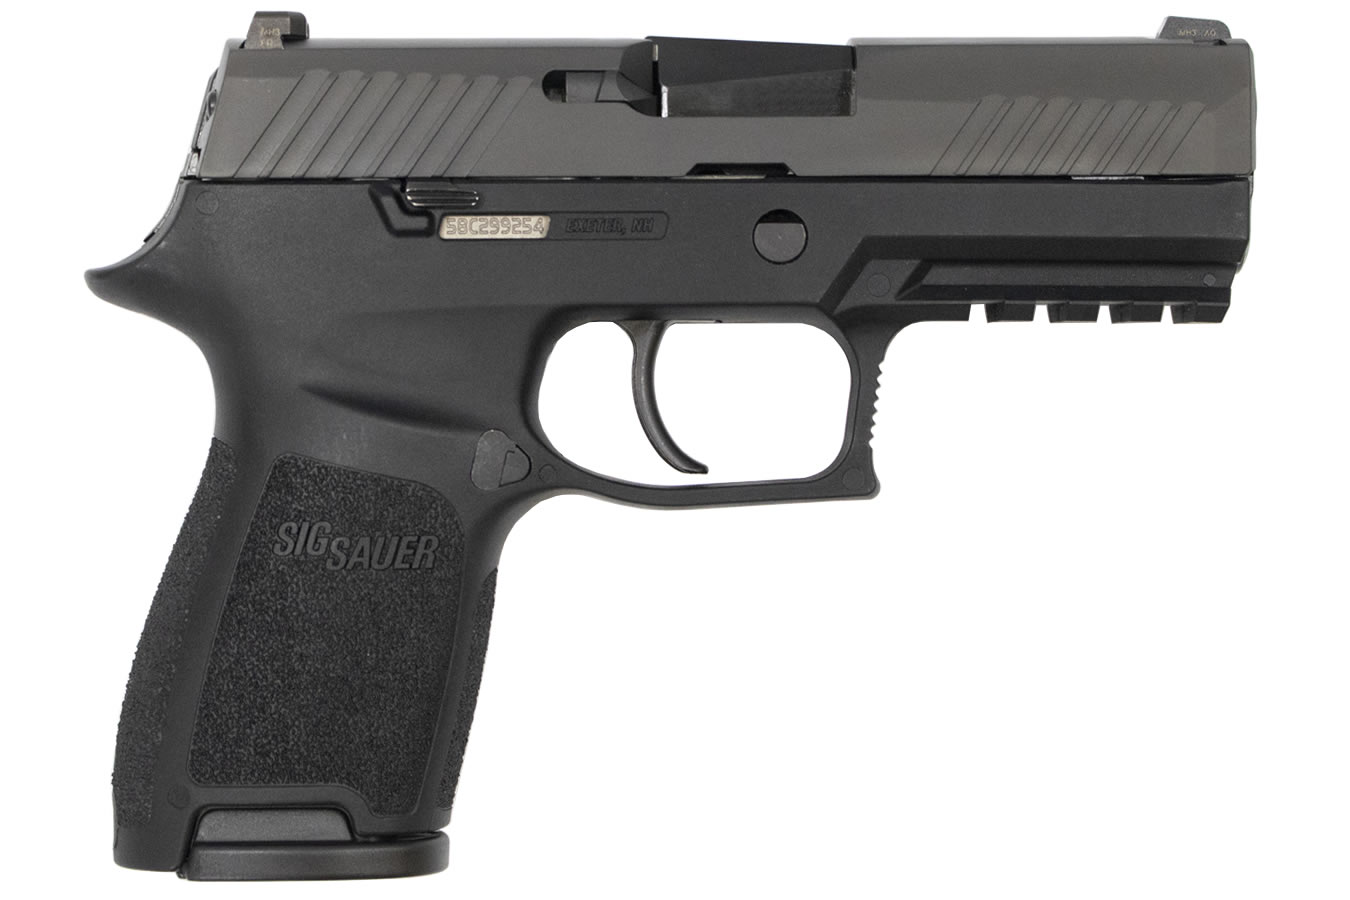 No. 12 Best Selling: SIG SAUER P320 9MM COMPACT WITH NIGHT SIGHTS